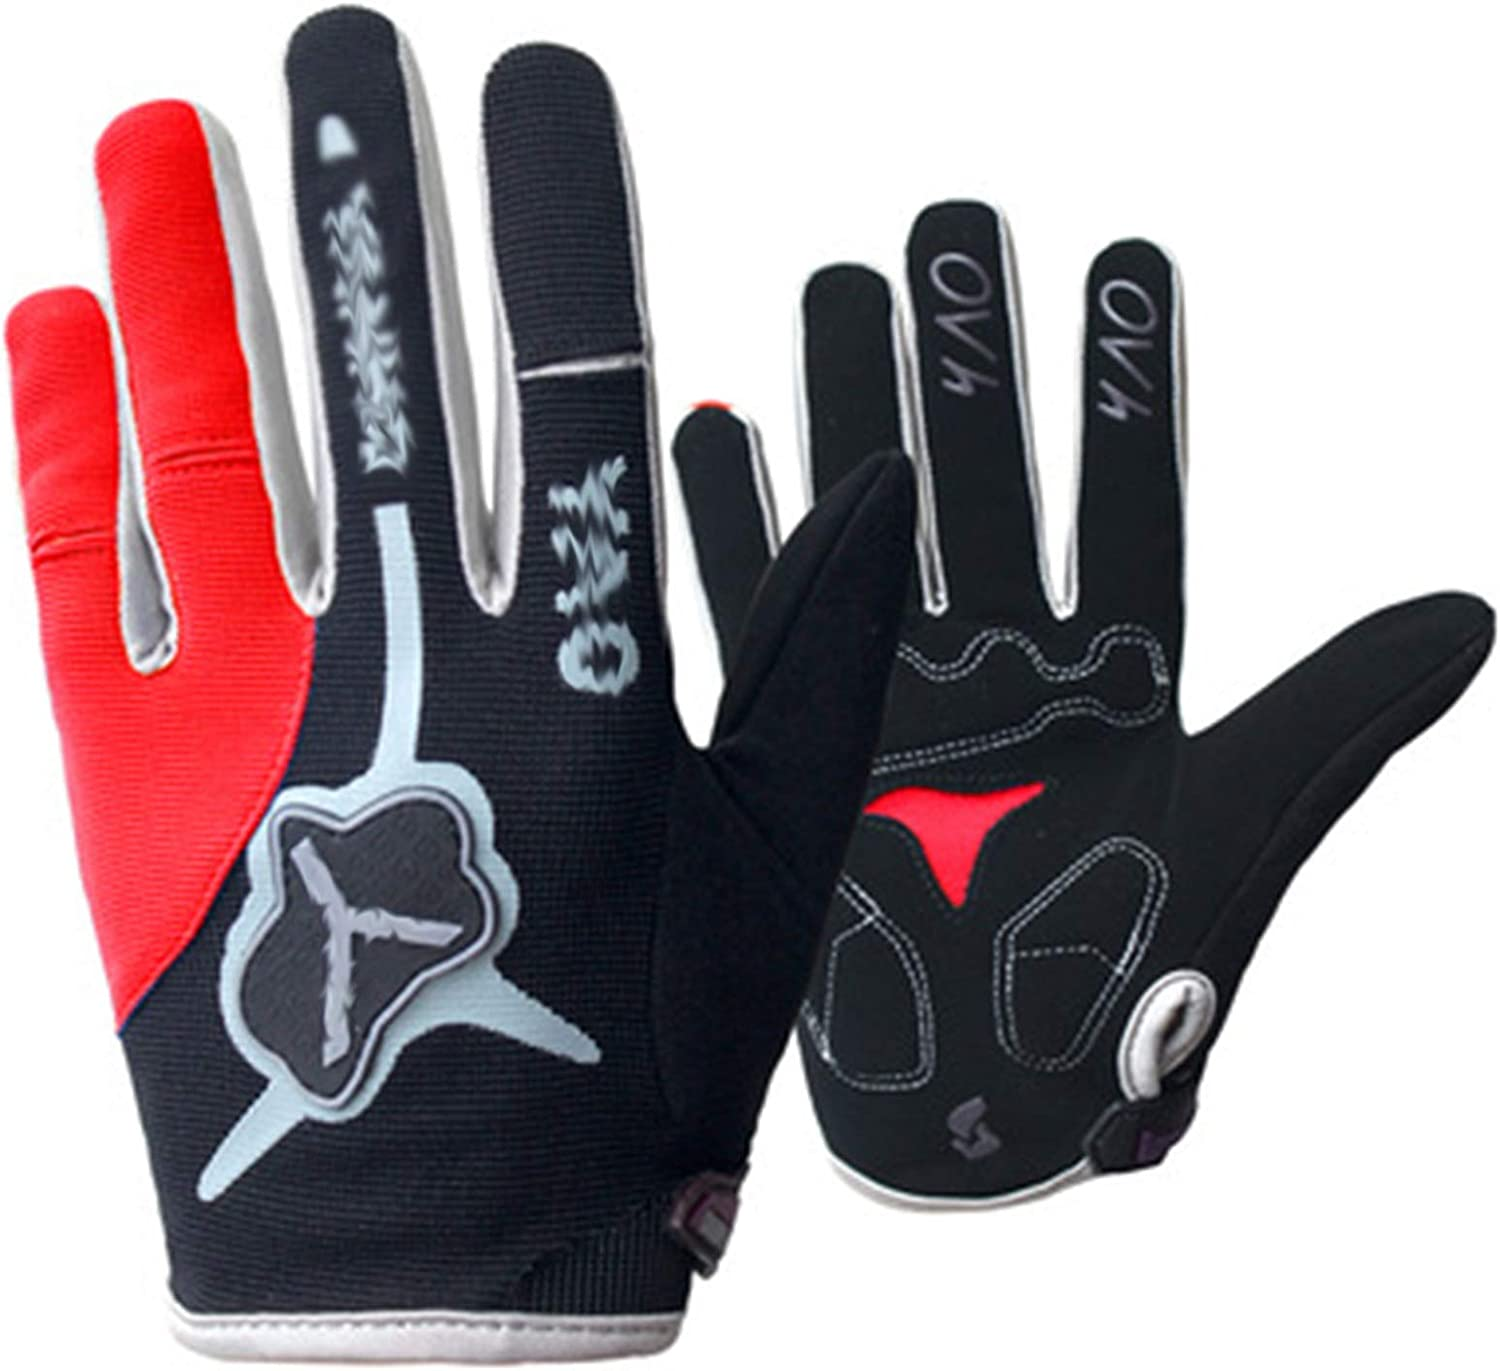 CCCMS Cycling Gloves Full Finger Very popular! Ranking TOP19 Padded Mountain Outdoor Bike Gl